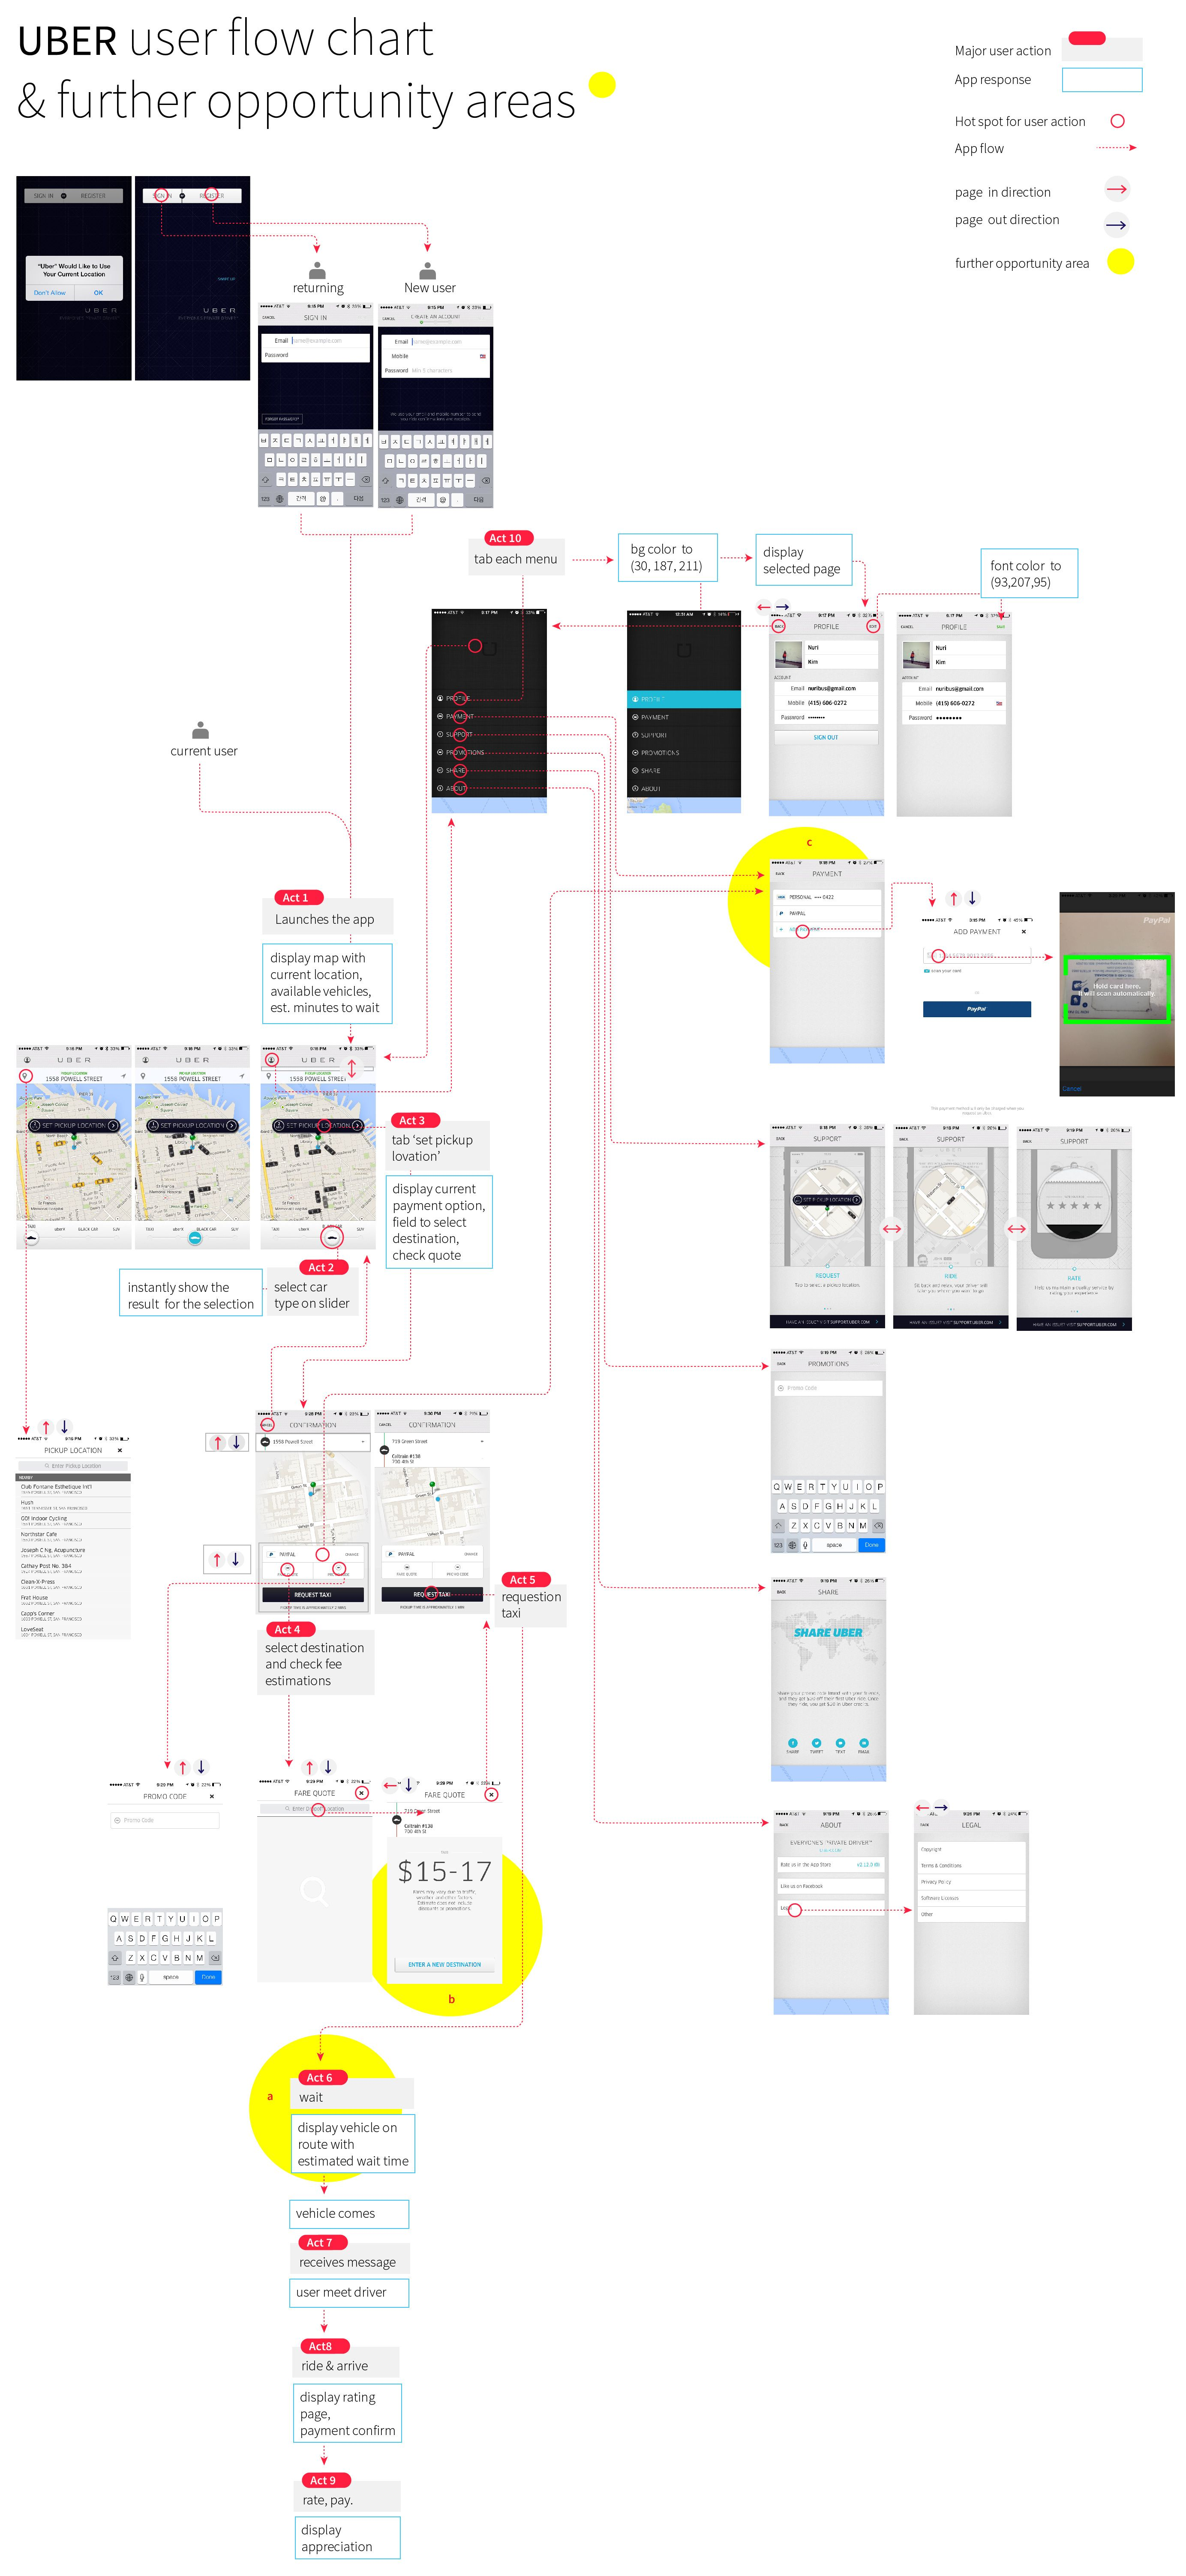 user interaction flow diagram steam boiler wiring uber chart and further opportunity areas product